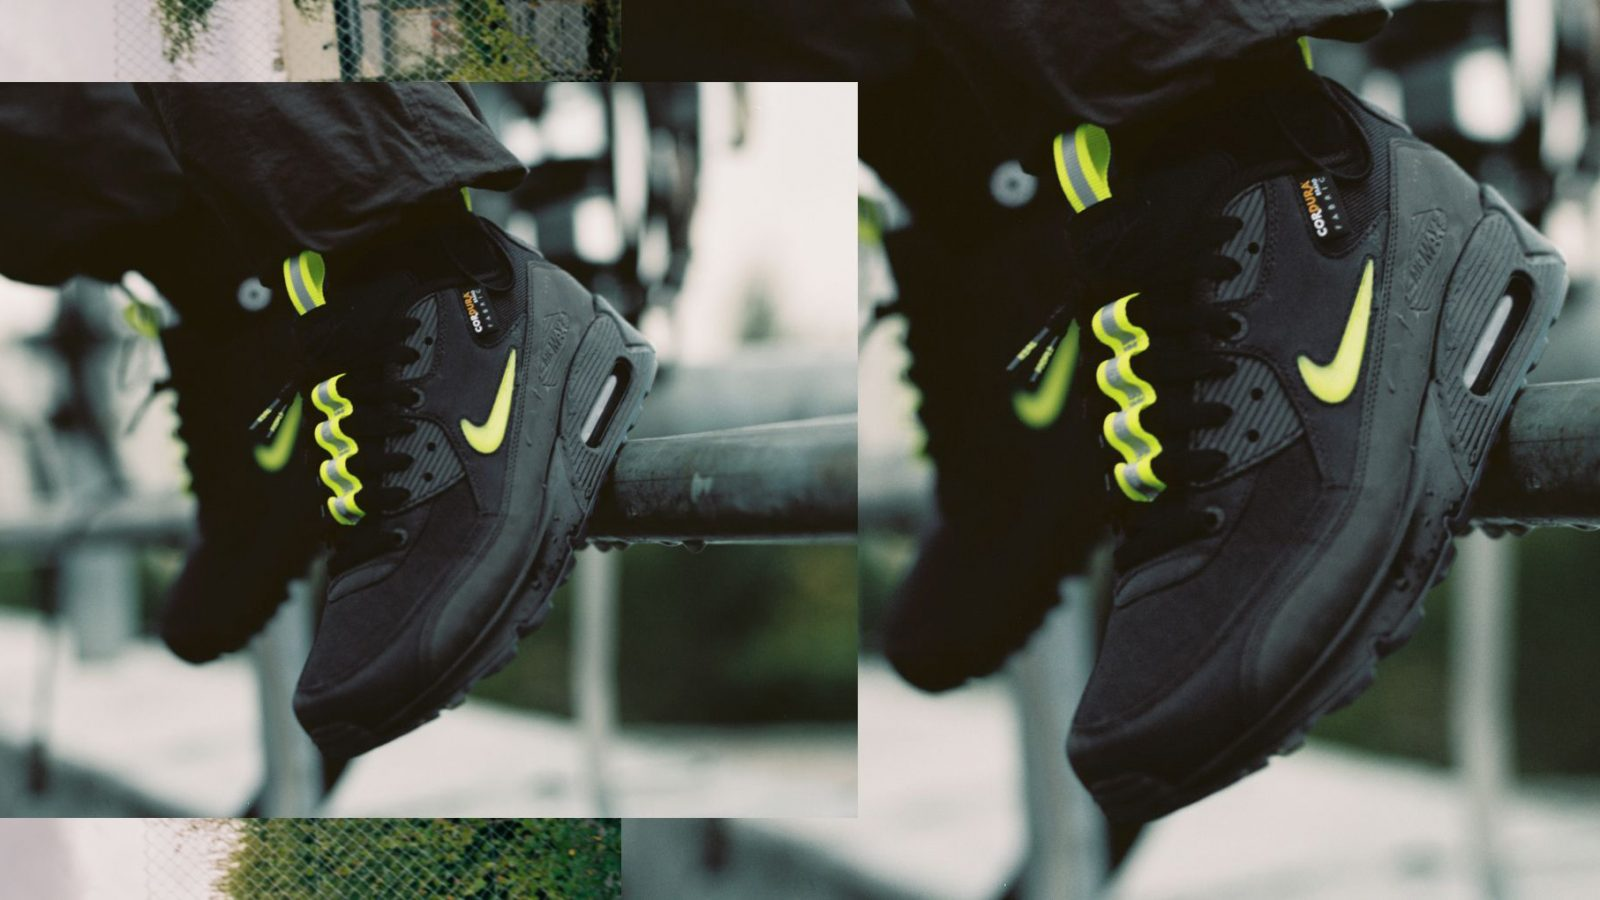 The Basement x Nike Air Max 90 Manchester side